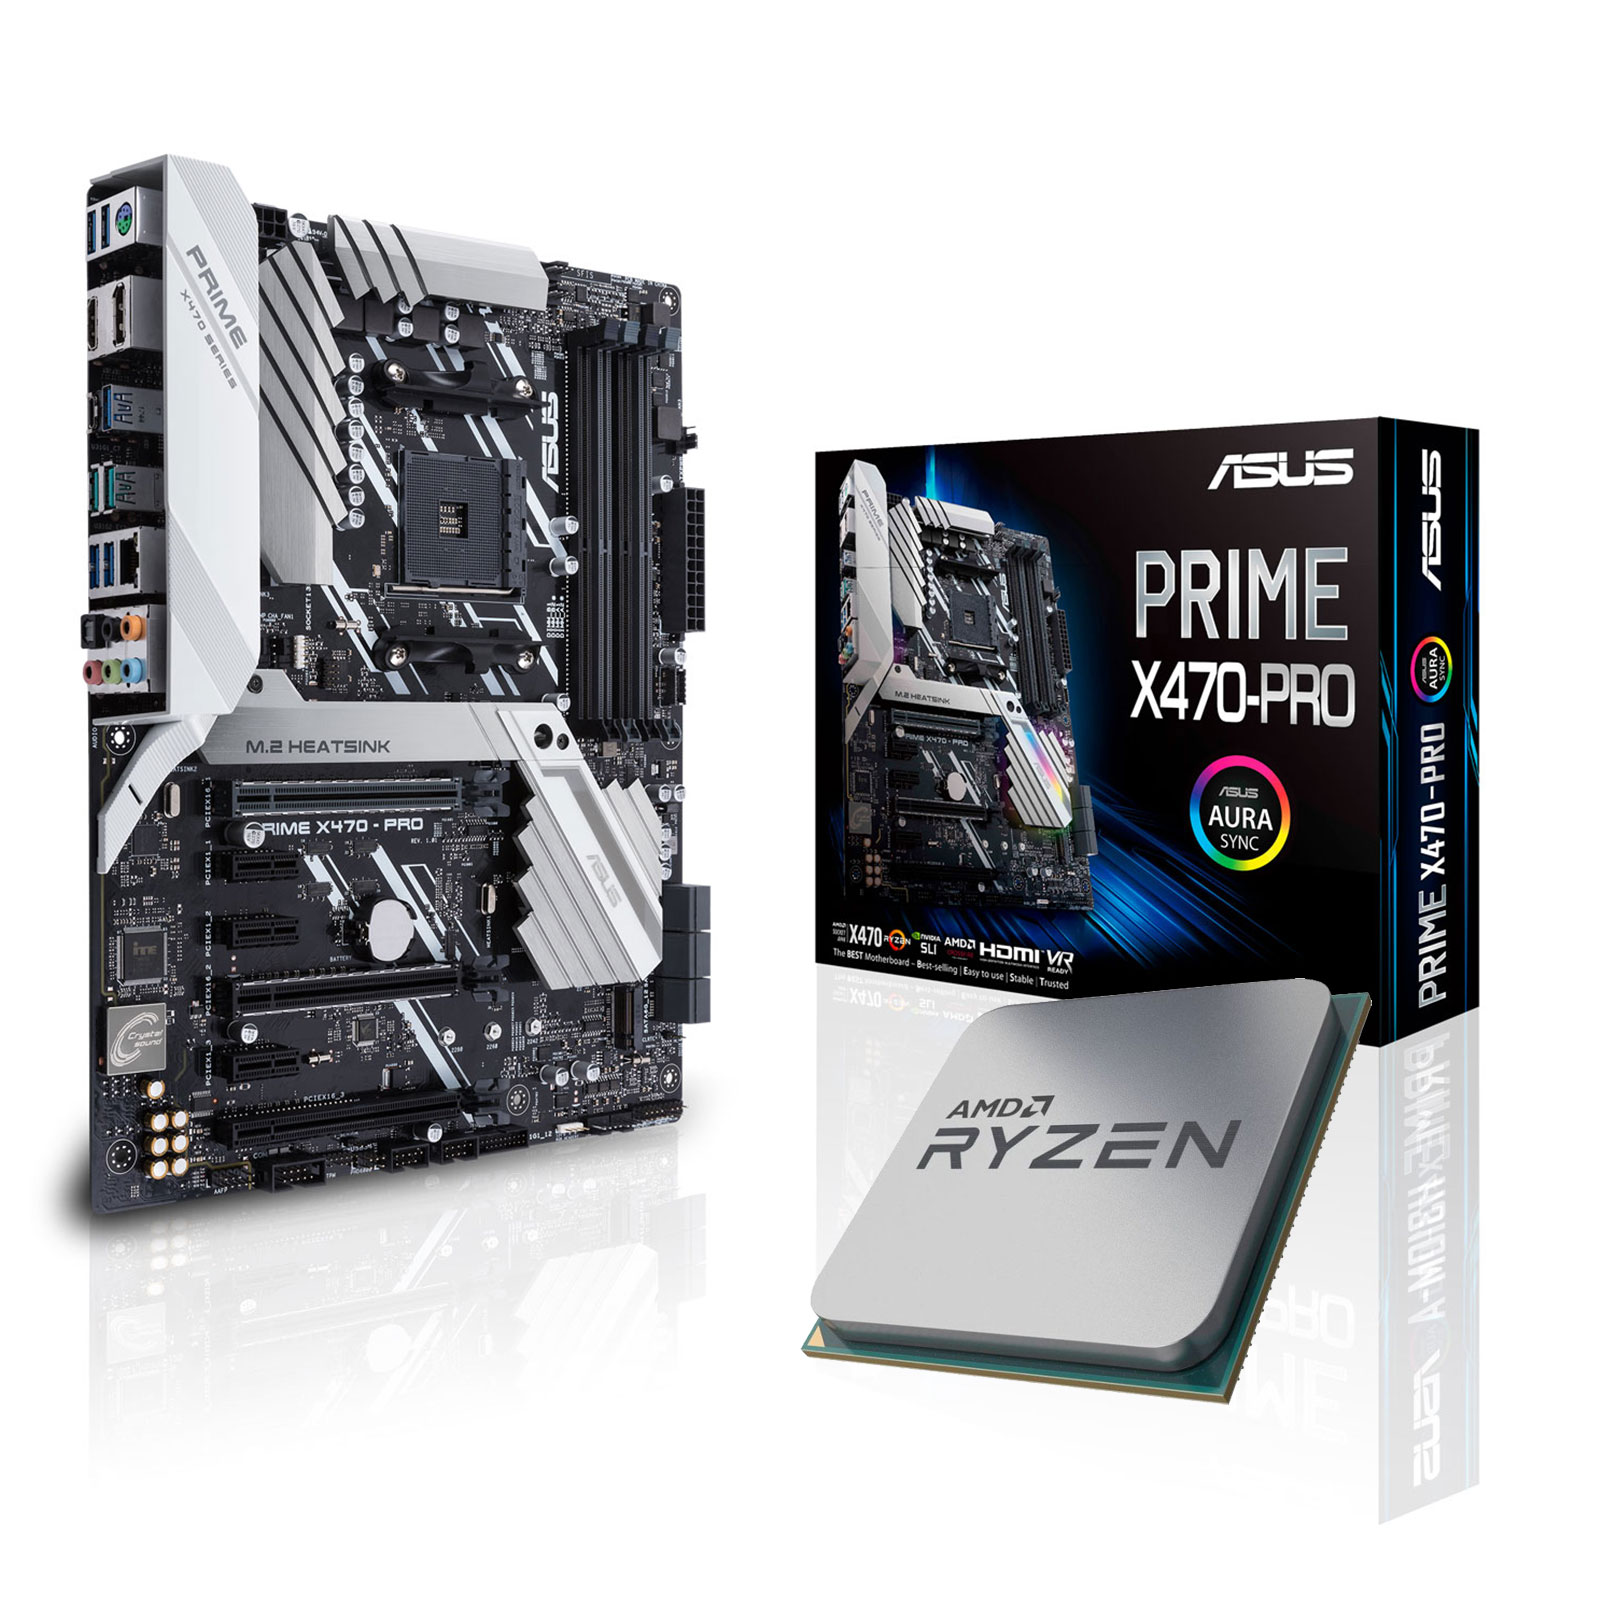 Kit upgrade PC Kit Upgrade PC AMD Ryzen 7 2700X ASUS PRIME X470-PRO Carte mère ATX Socket AM4 AMD X470 + CPU AMD Ryzen 7 2700X (3.7 GHz)